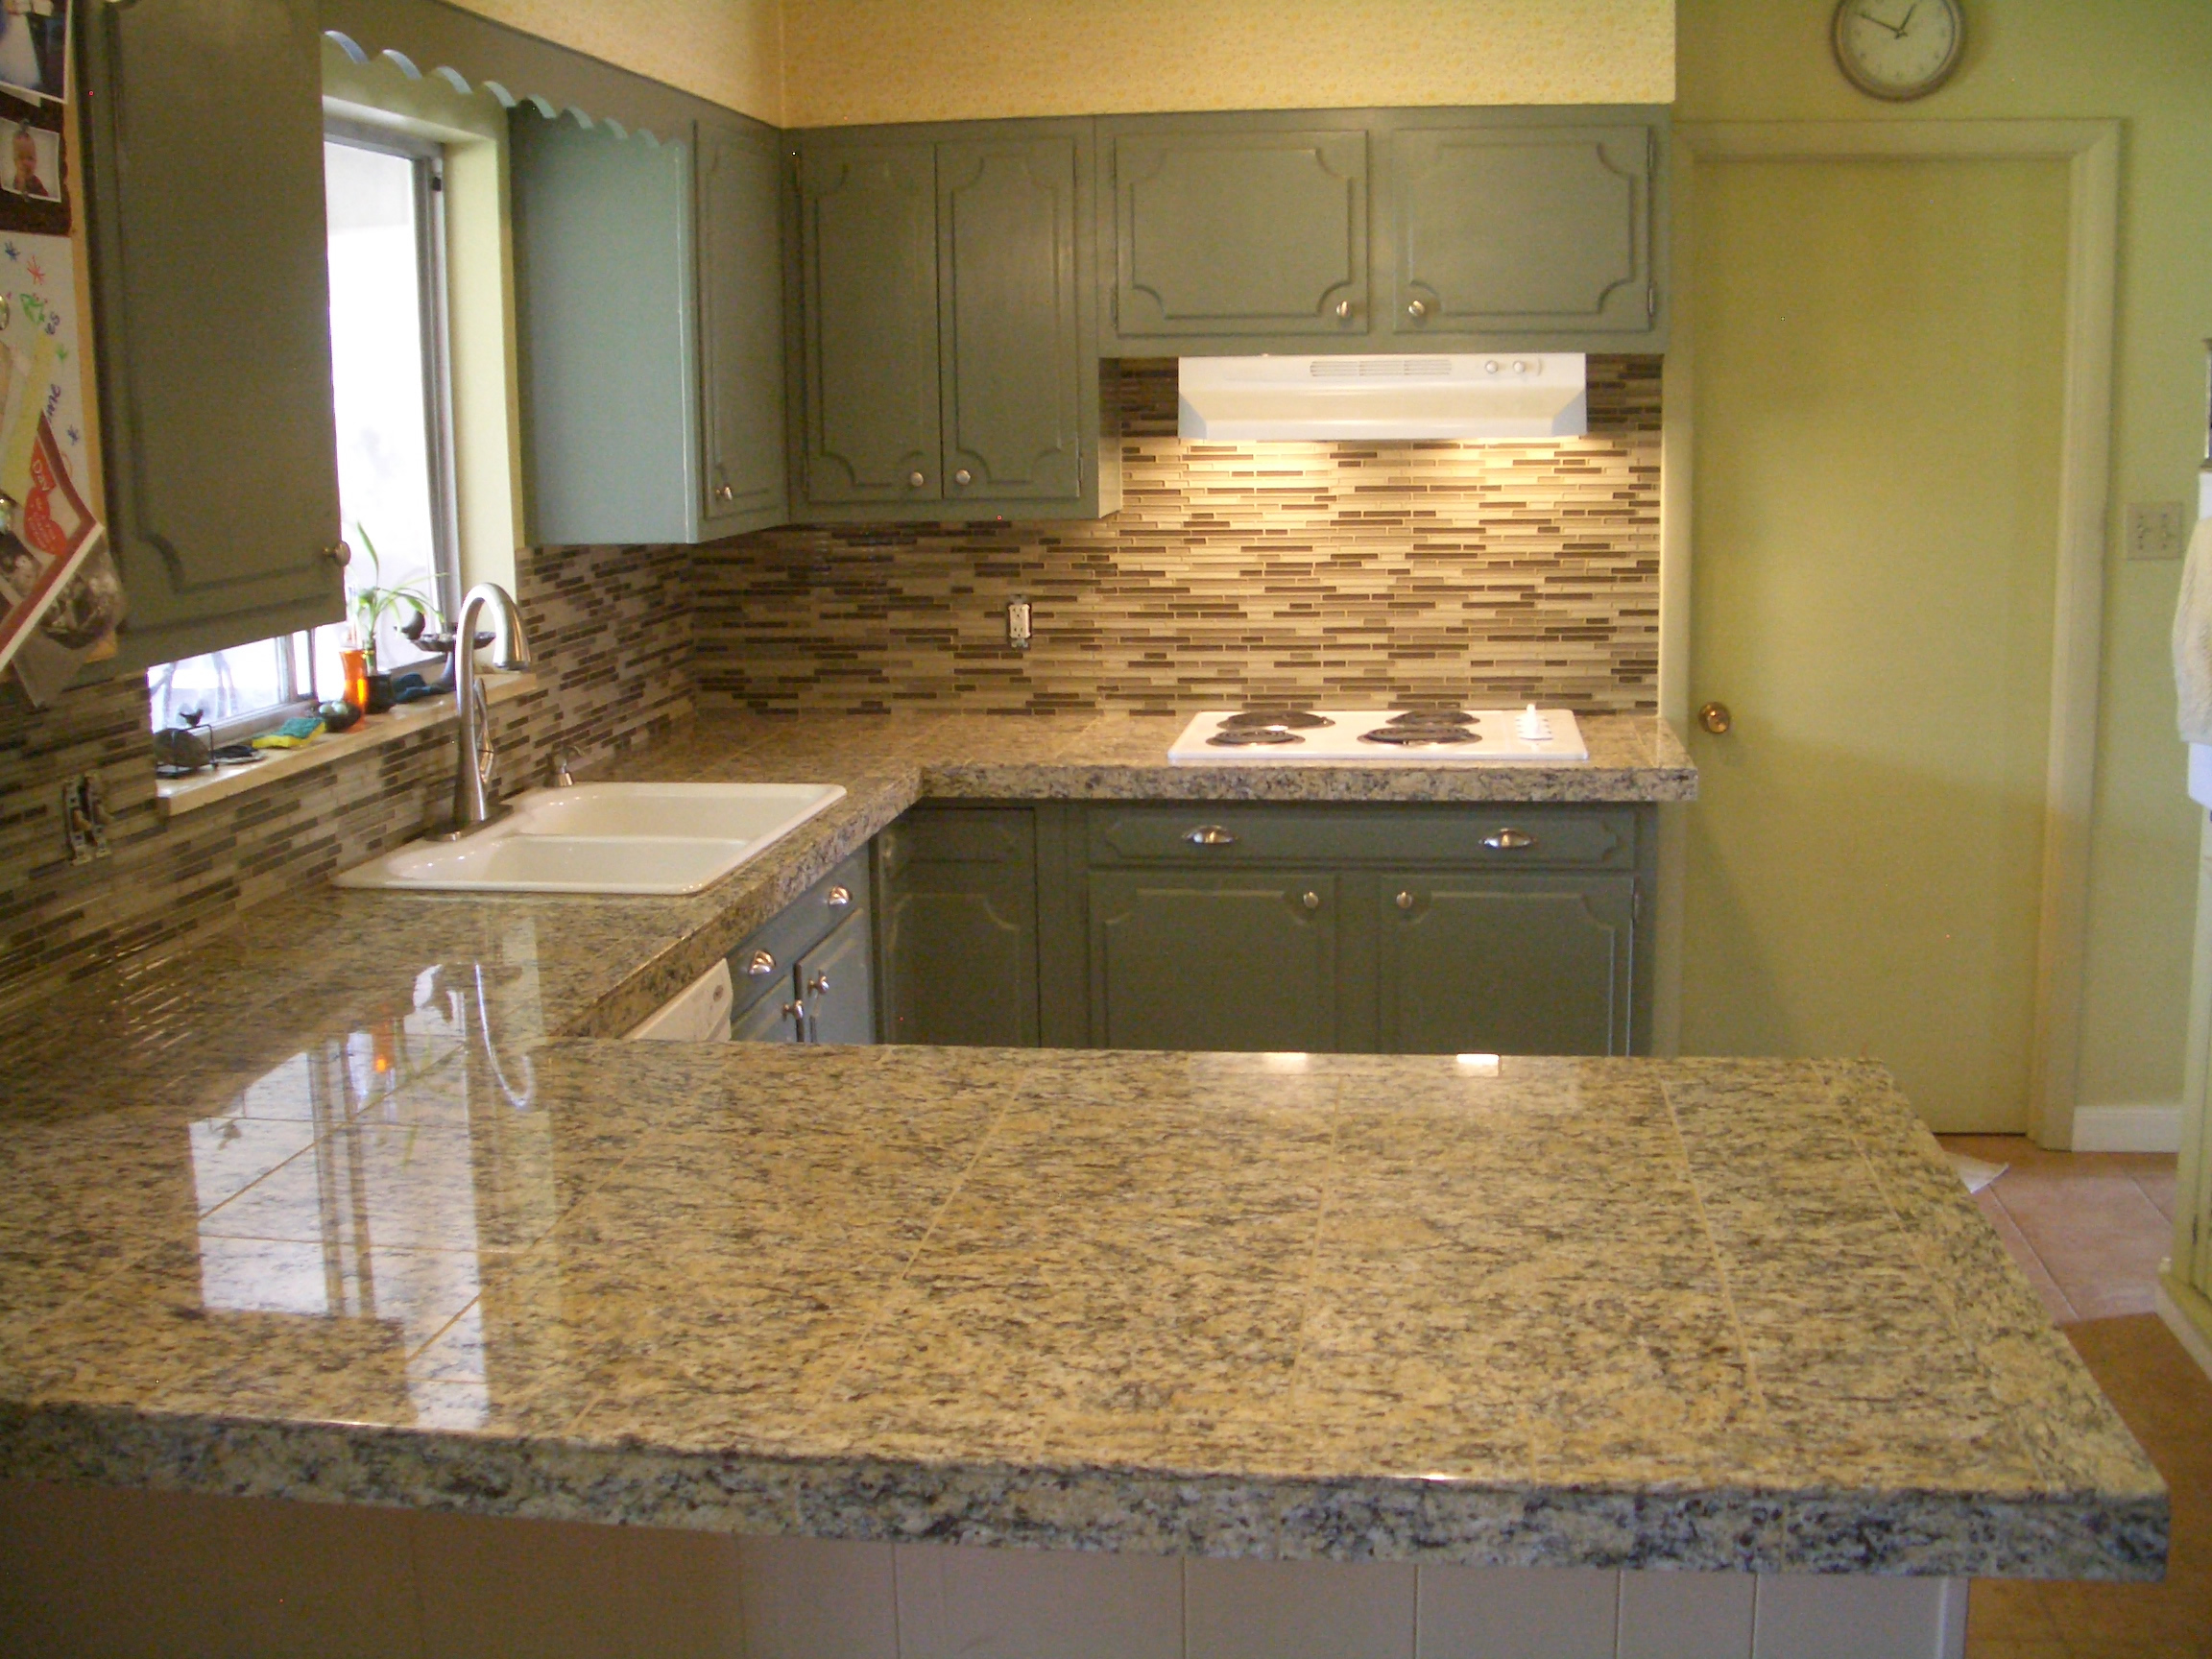 Glass tile kitchen backsplash special only 899 for Glass tile kitchen backsplash ideas